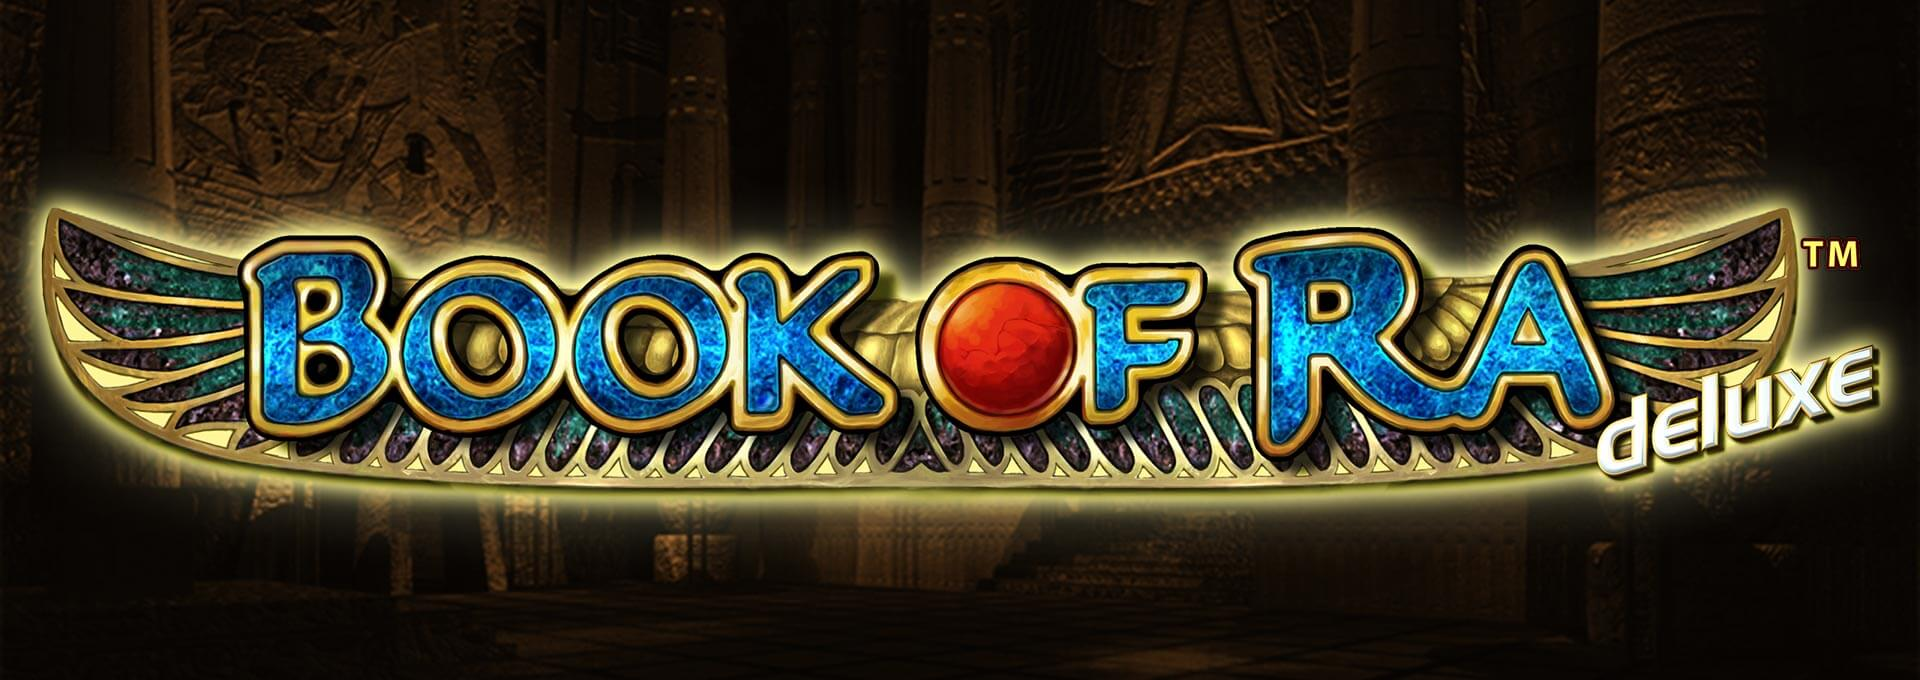 online casino gambling site book of ra